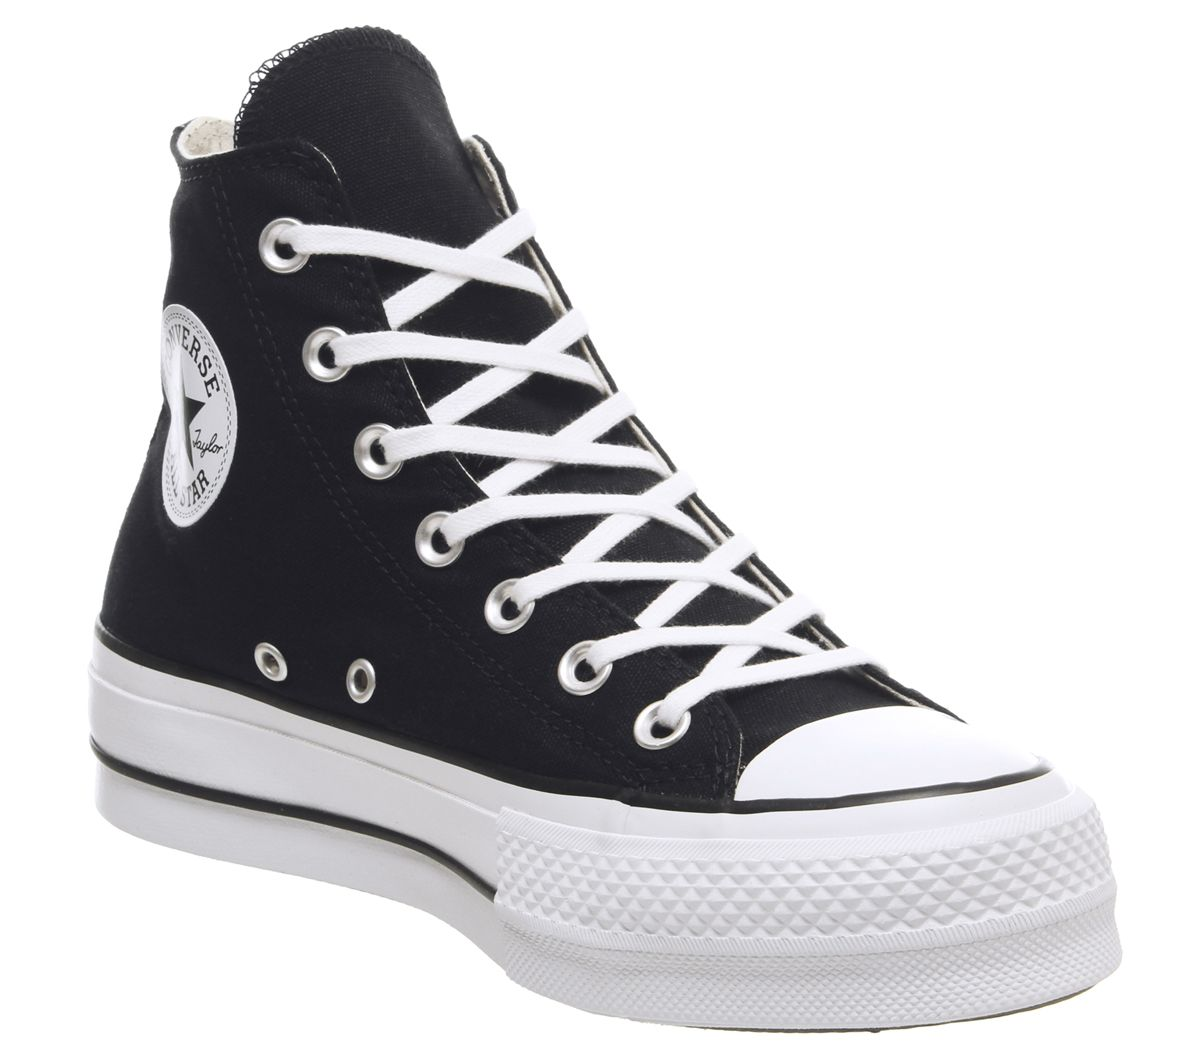 fe233ac1086755 Converse All Star Lift Hi Black White - Hers trainers